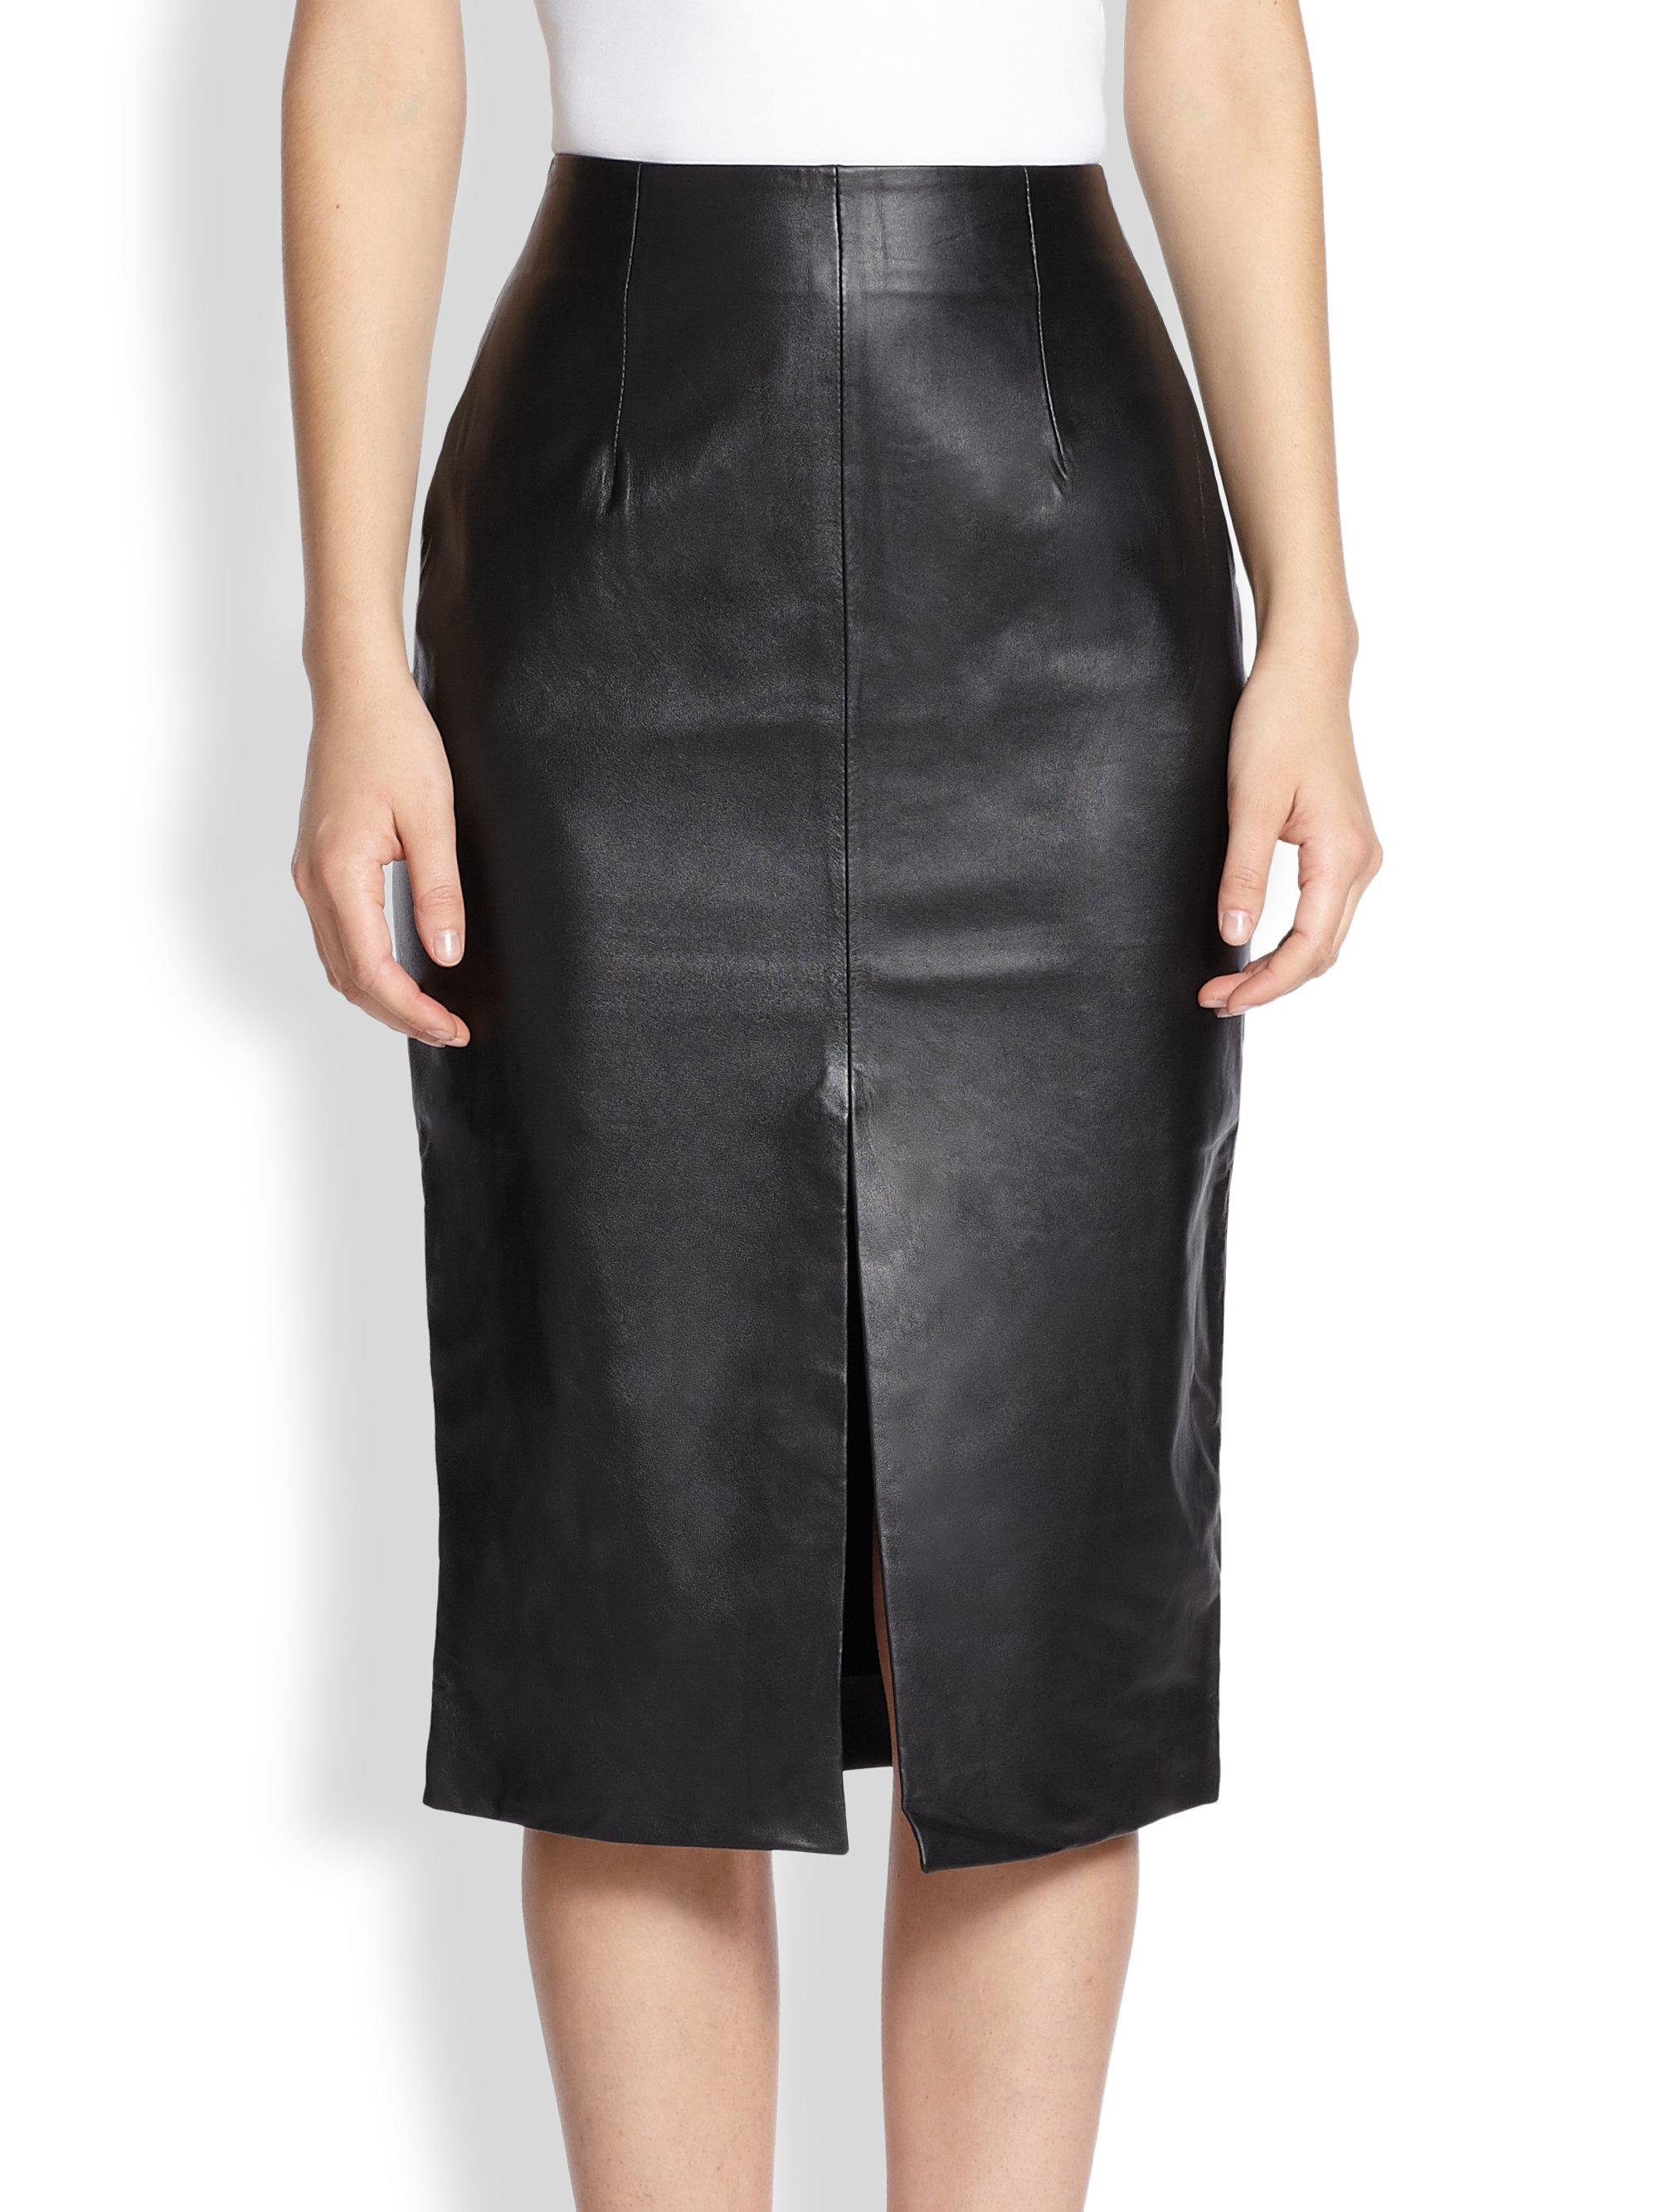 Nicholas Front-slit Leather Pencil Skirt in Black | Lyst